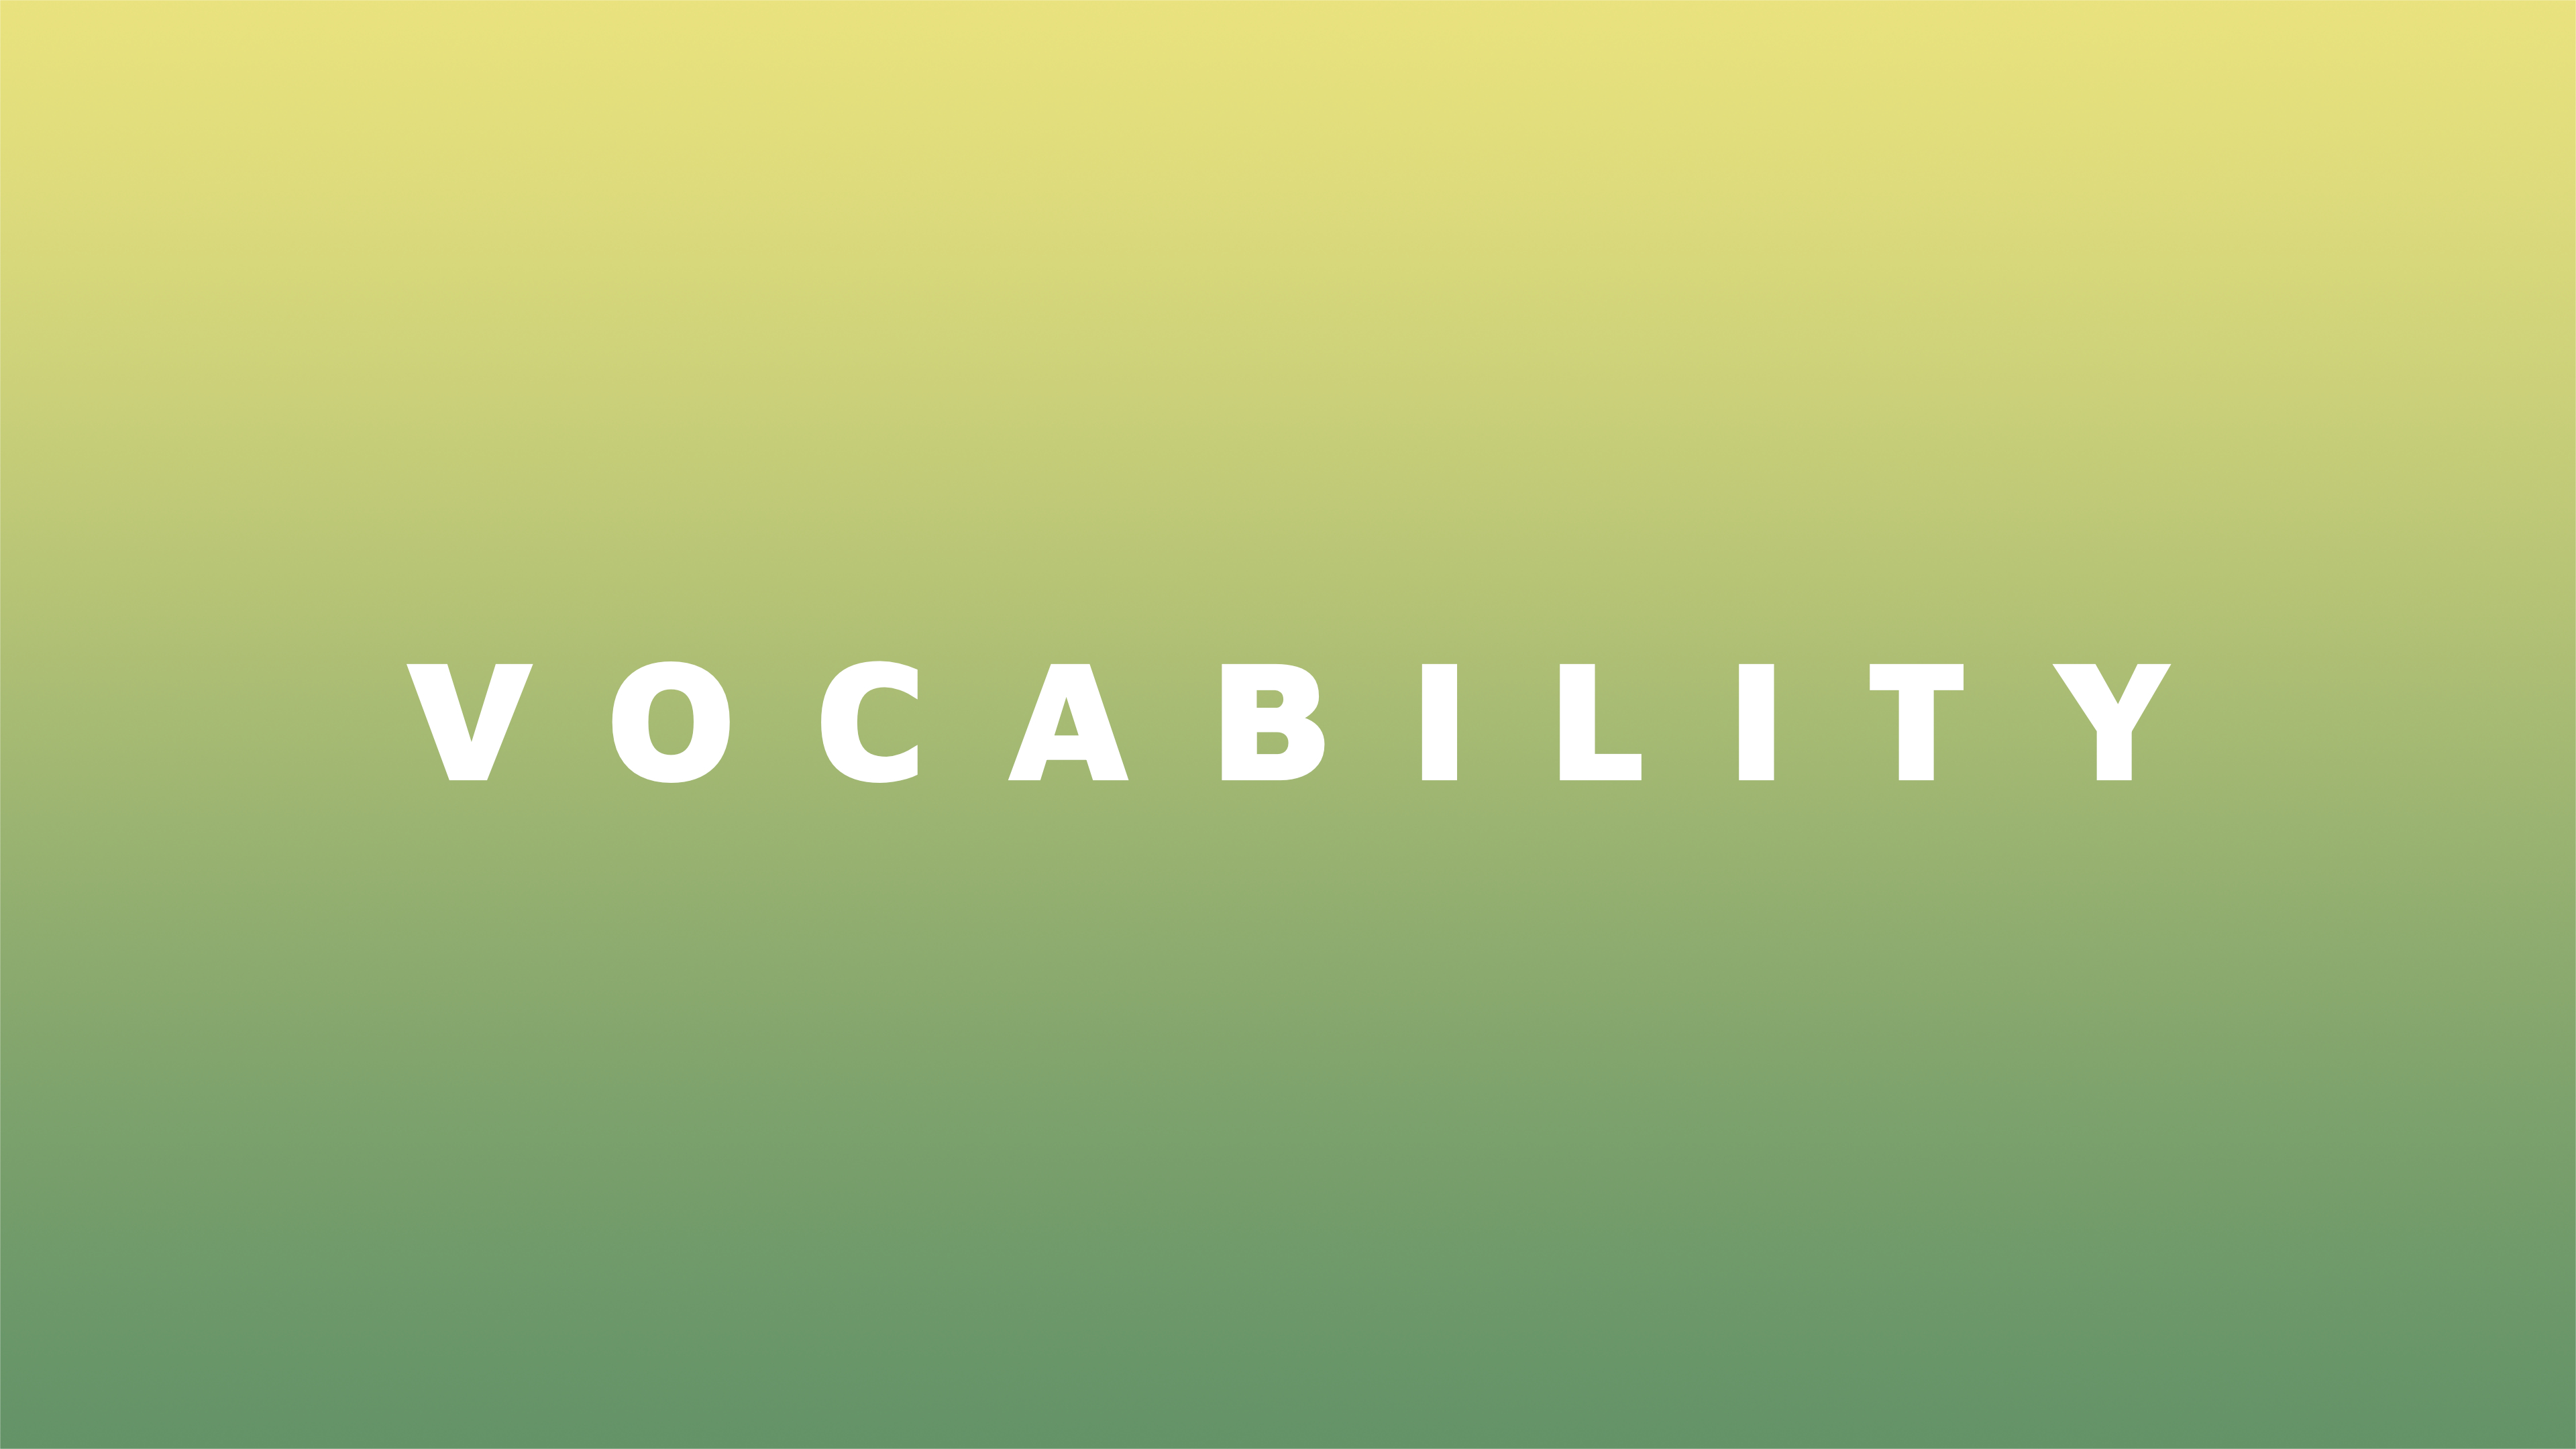 Text: Vocability. On green background.